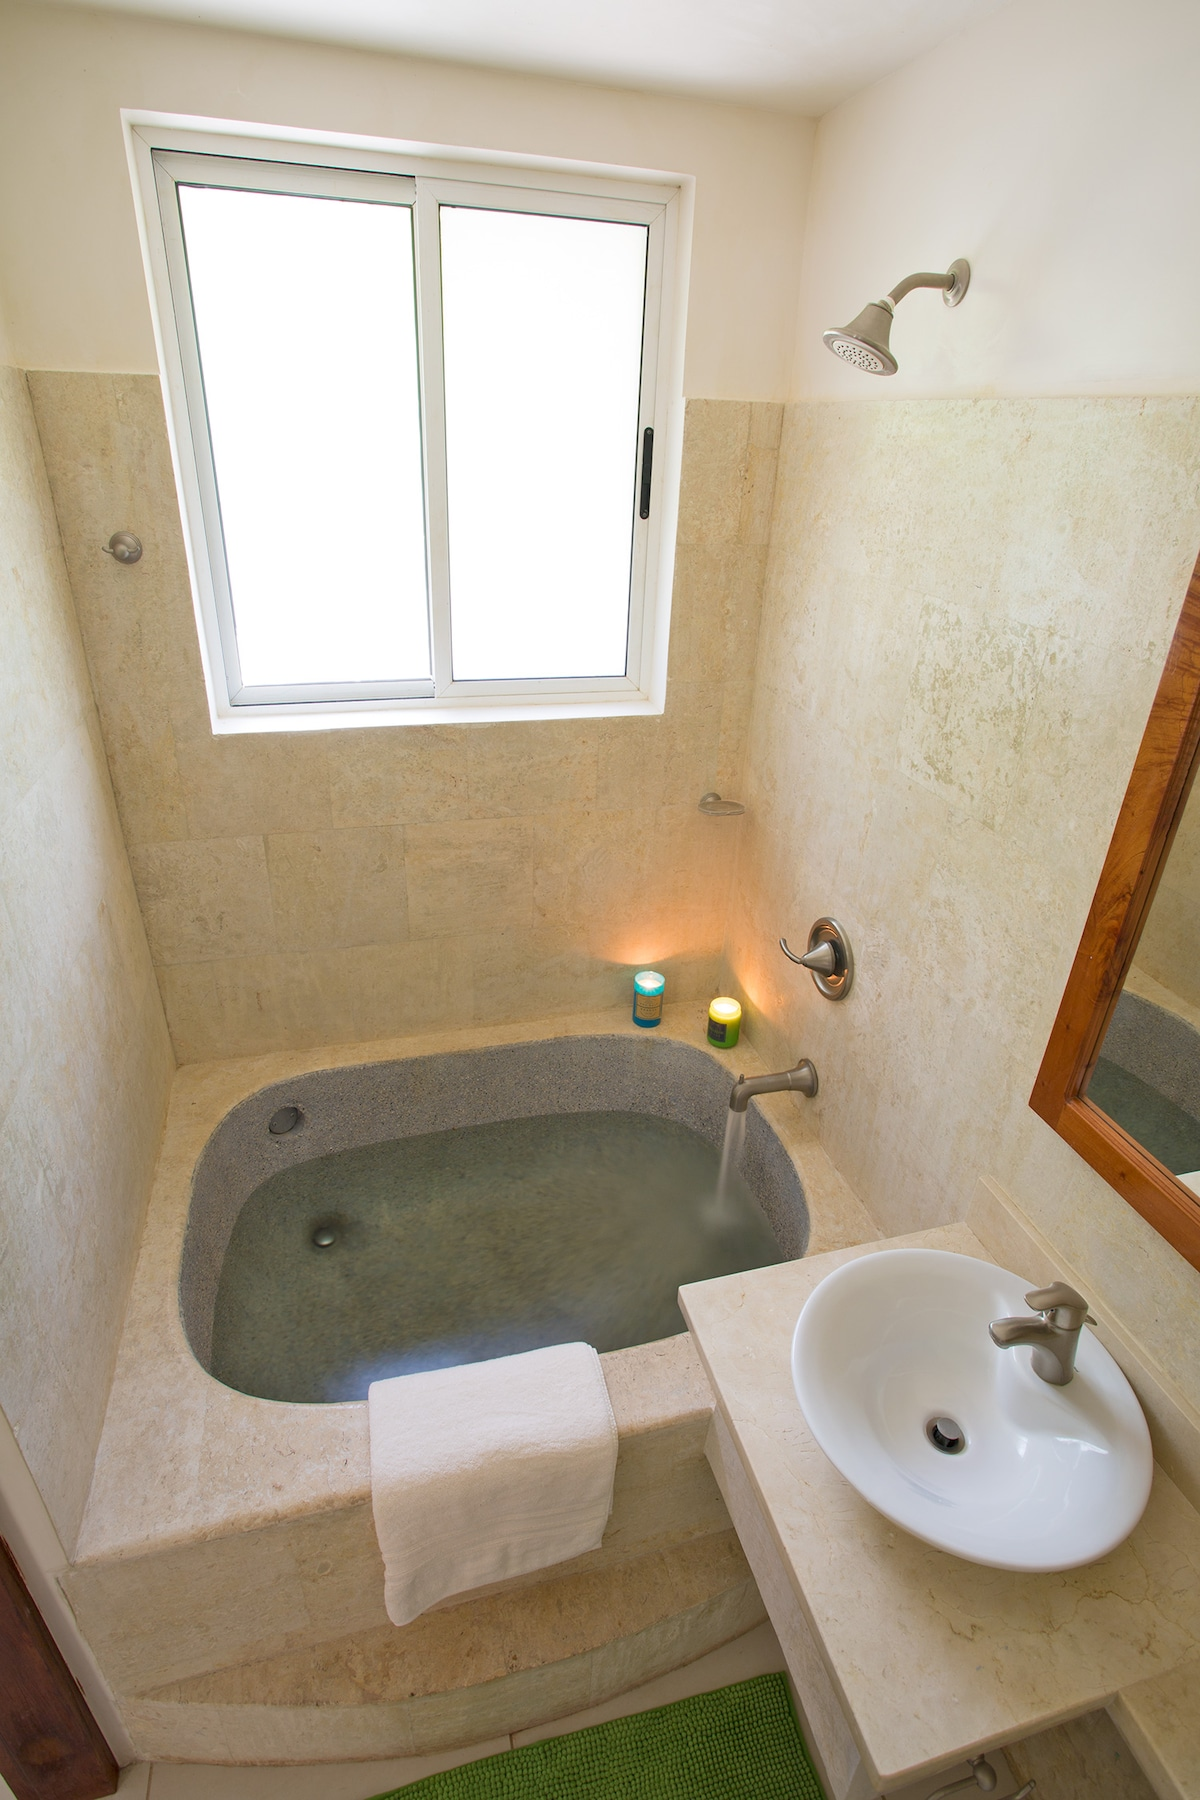 When in Costa Rica take a bath like a Roman... : ) Coral tiles and marble counter tops.